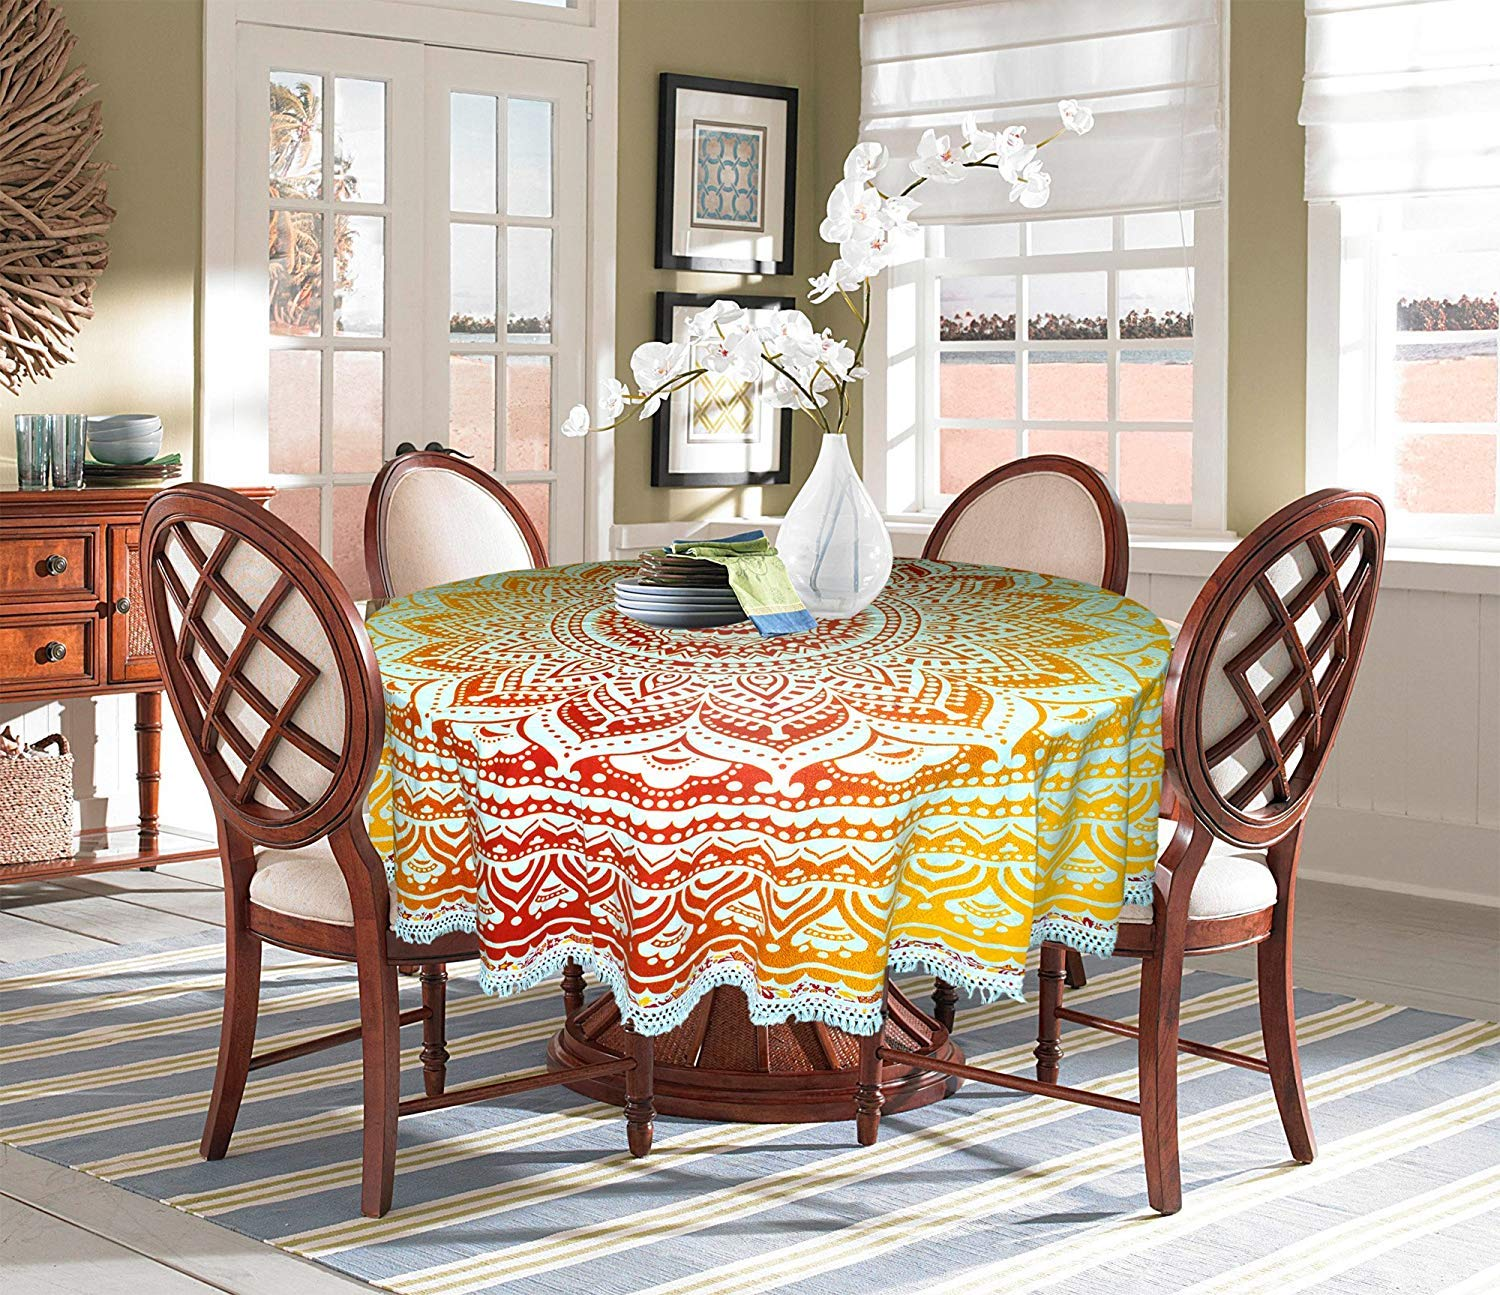 Buy FIRNU Round Dining Table Cover 9 Cotton Traditional Ethnic ...